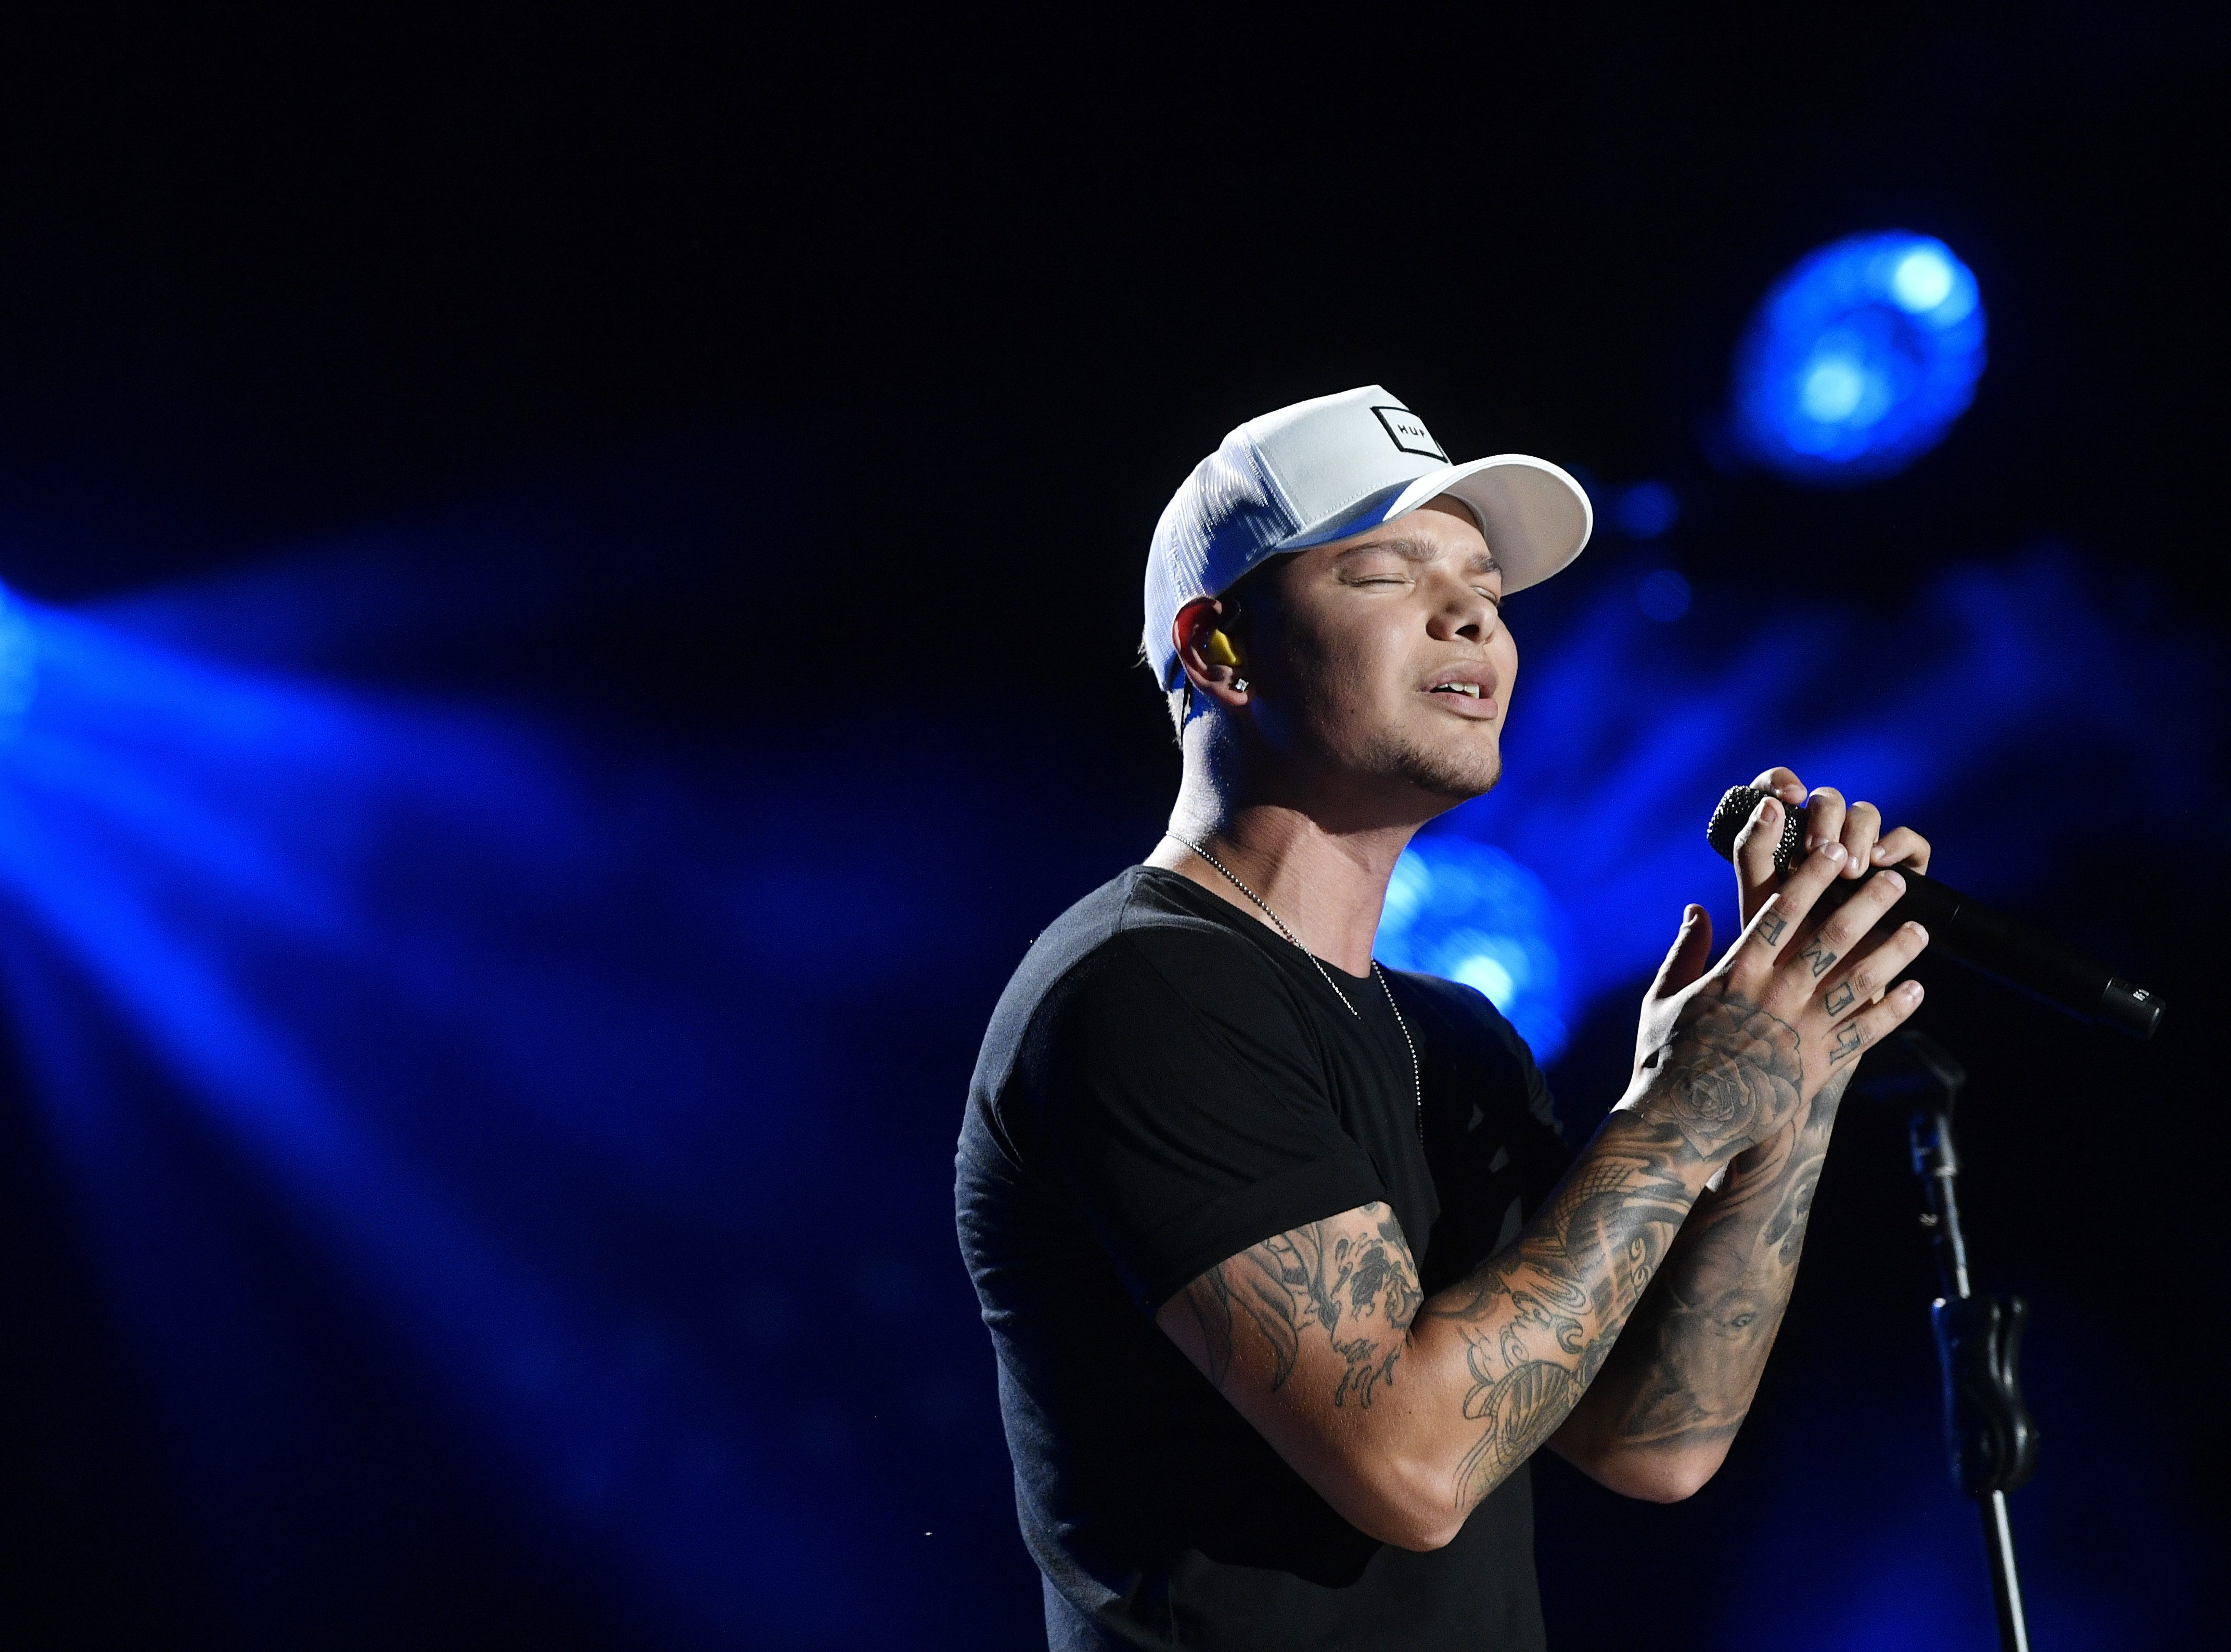 Kane Brown is scheduled to play Nissan Stadium during CMA Fest 2019.